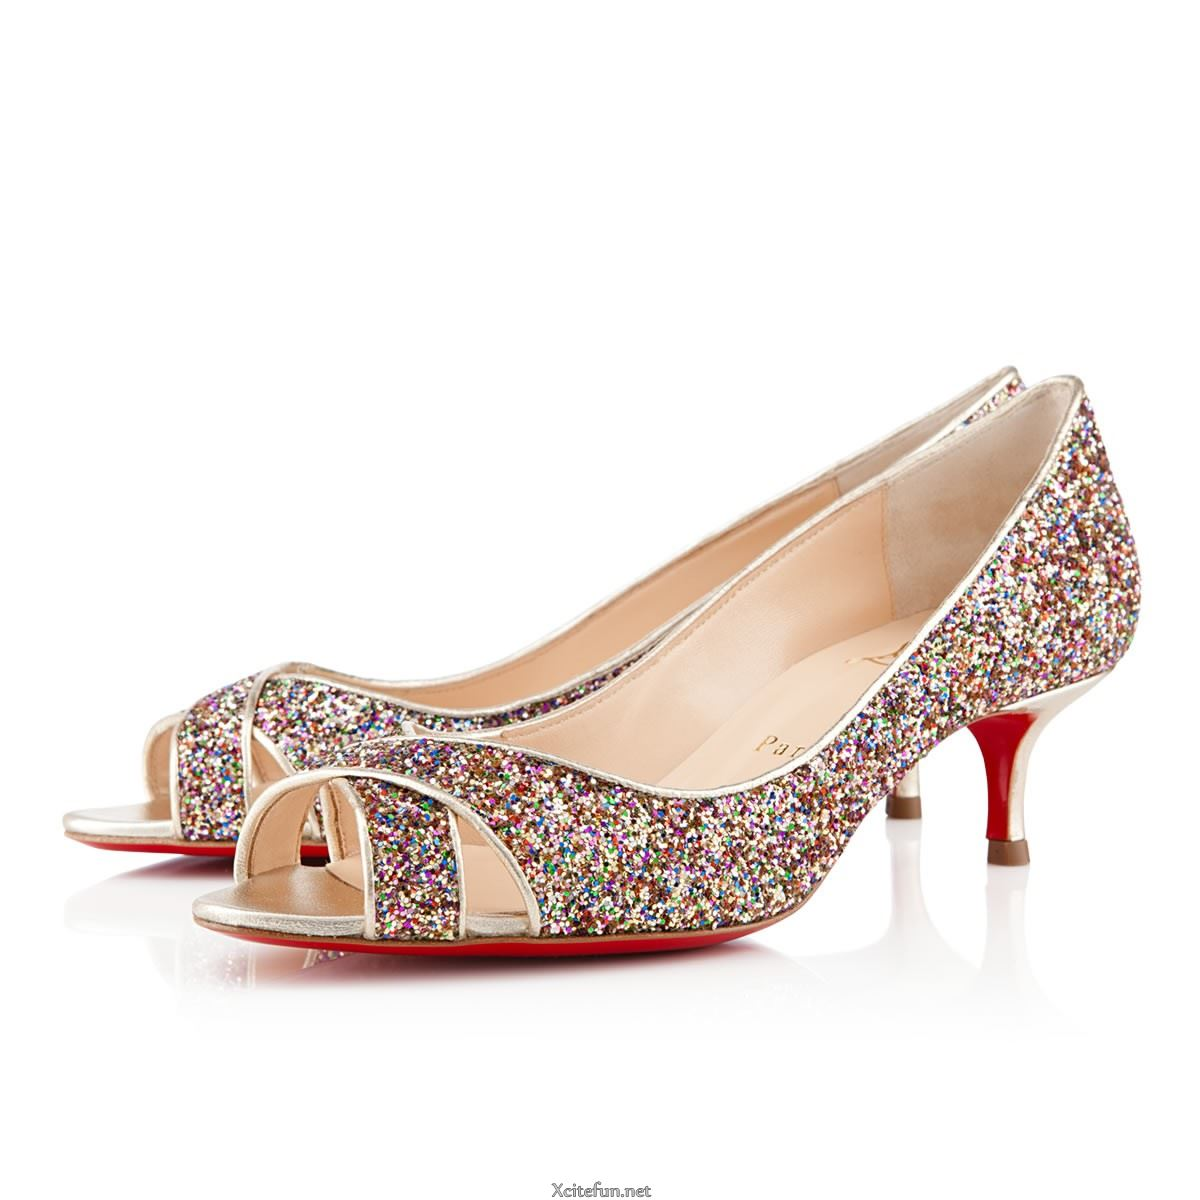 Bridal Shoes Usa: High Heel Christian Louboutin Footwear For Bridal